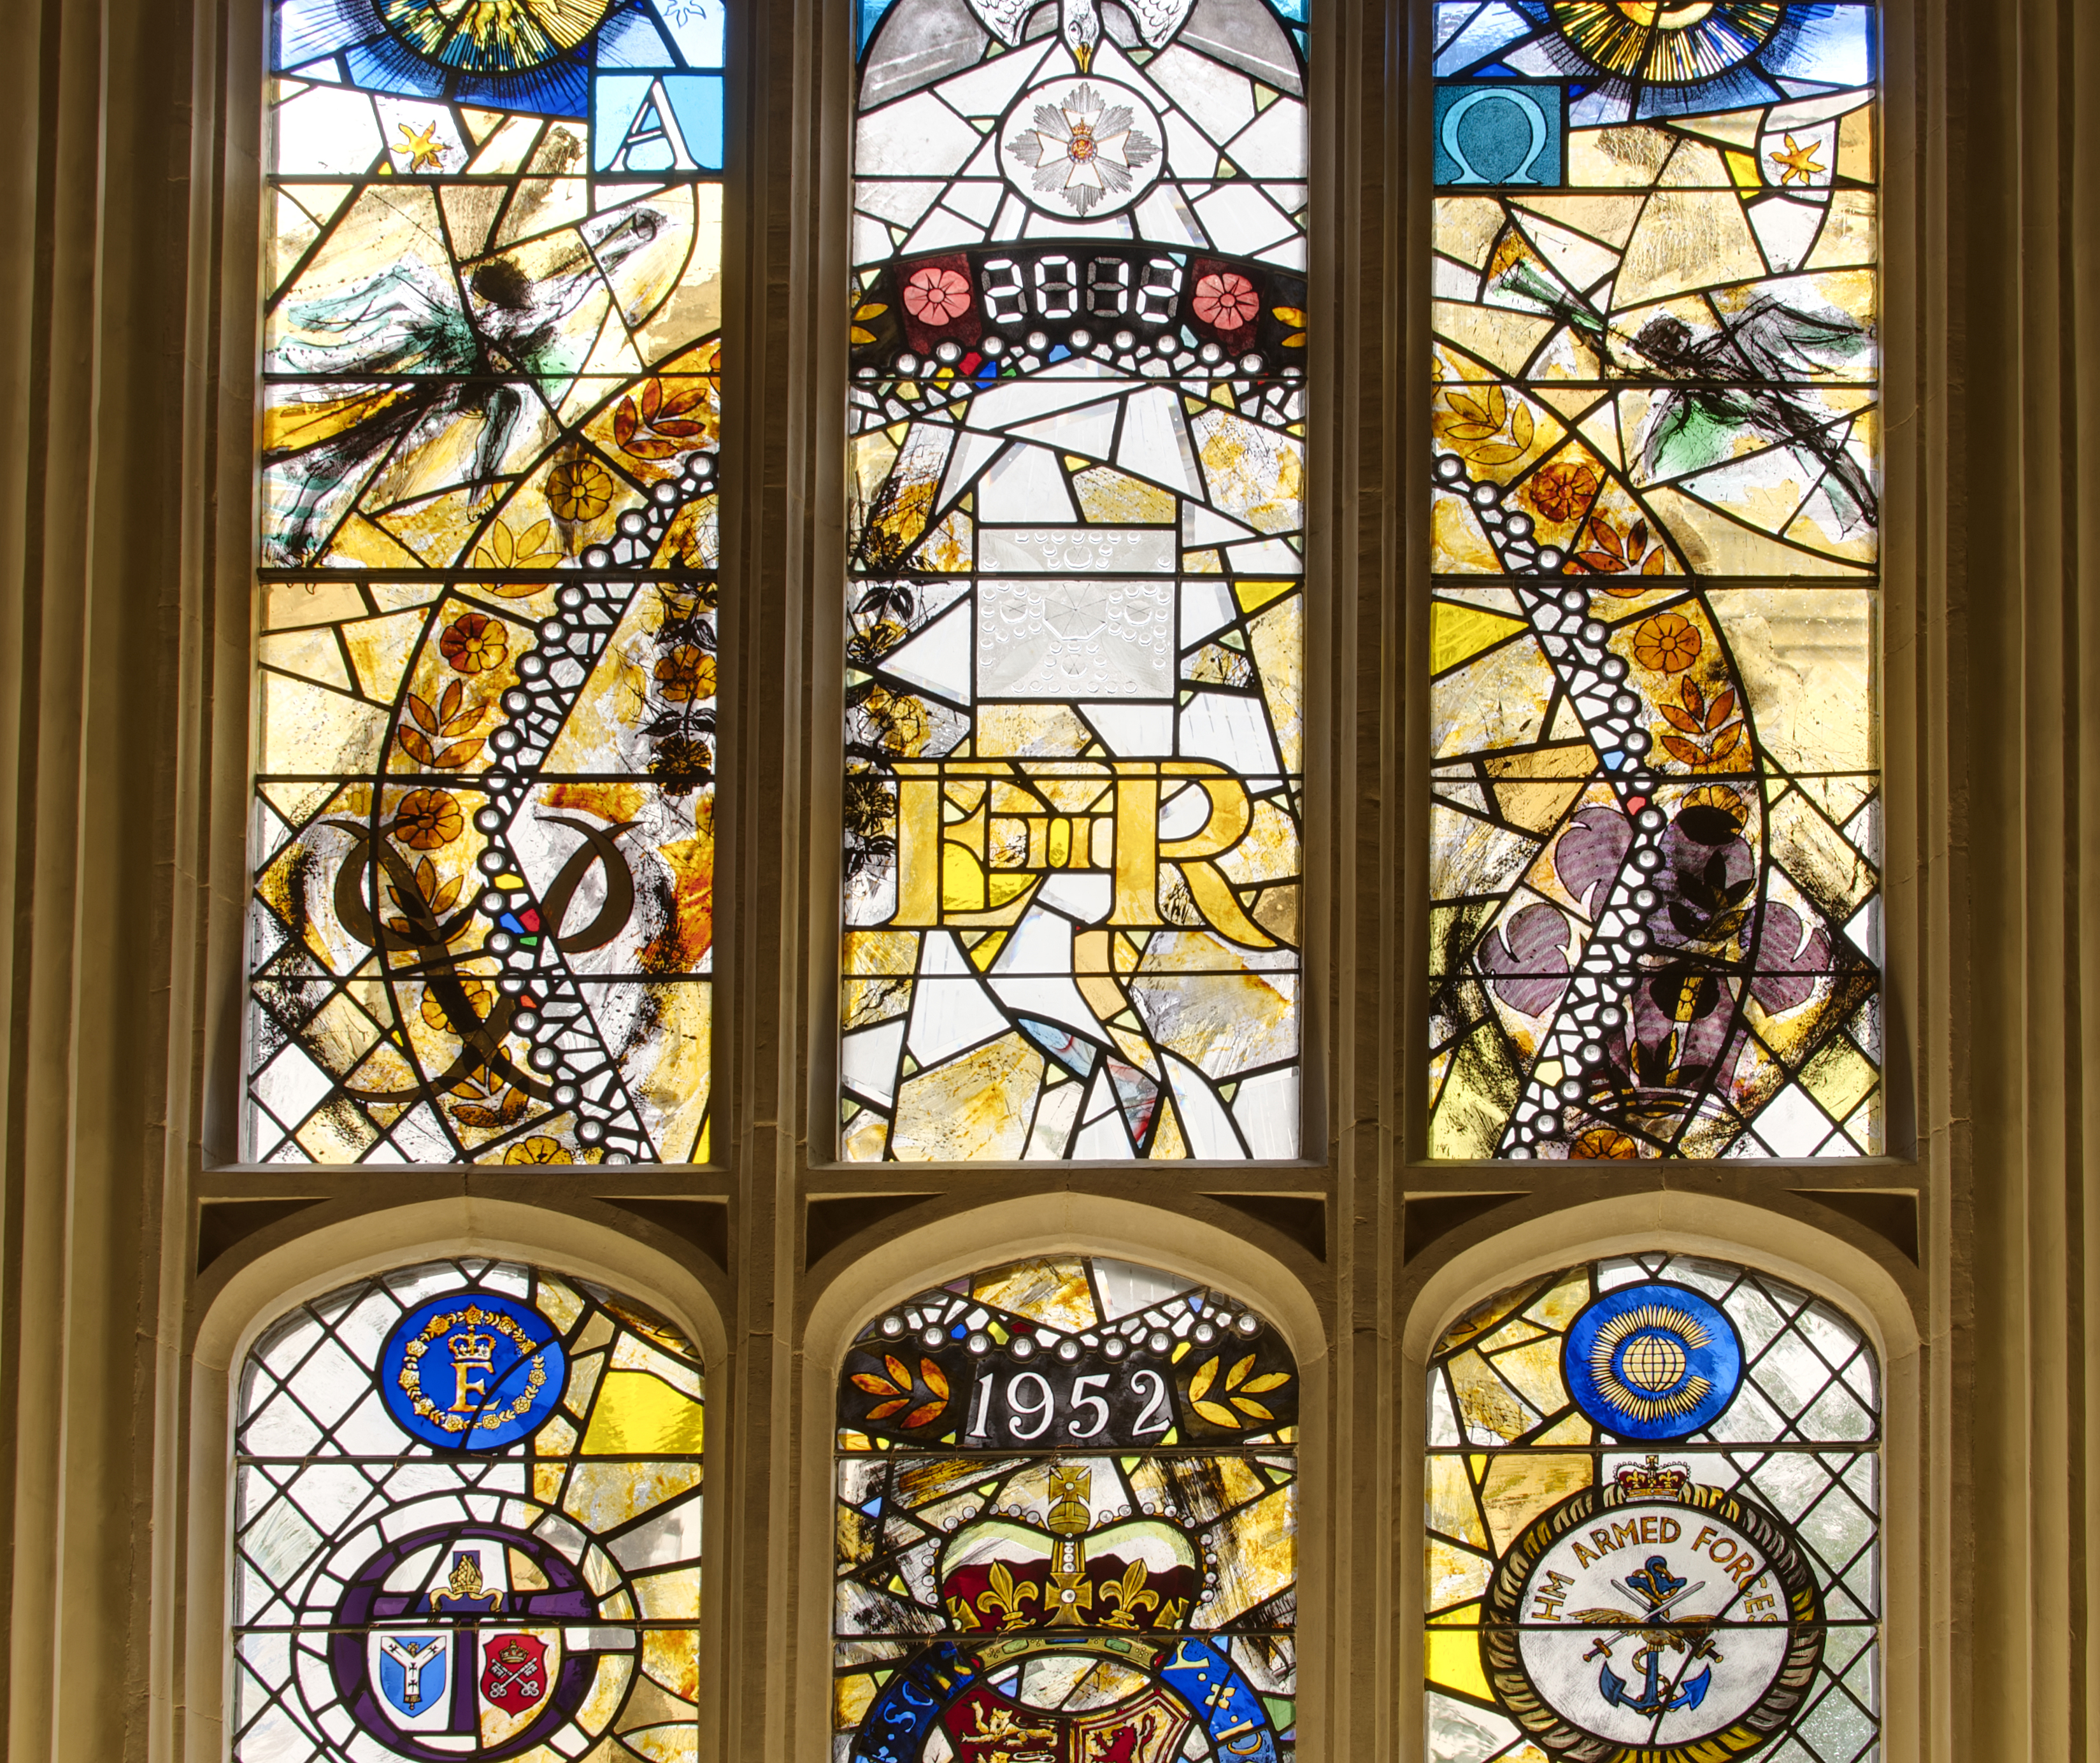 Diamond_Jubilee_Window